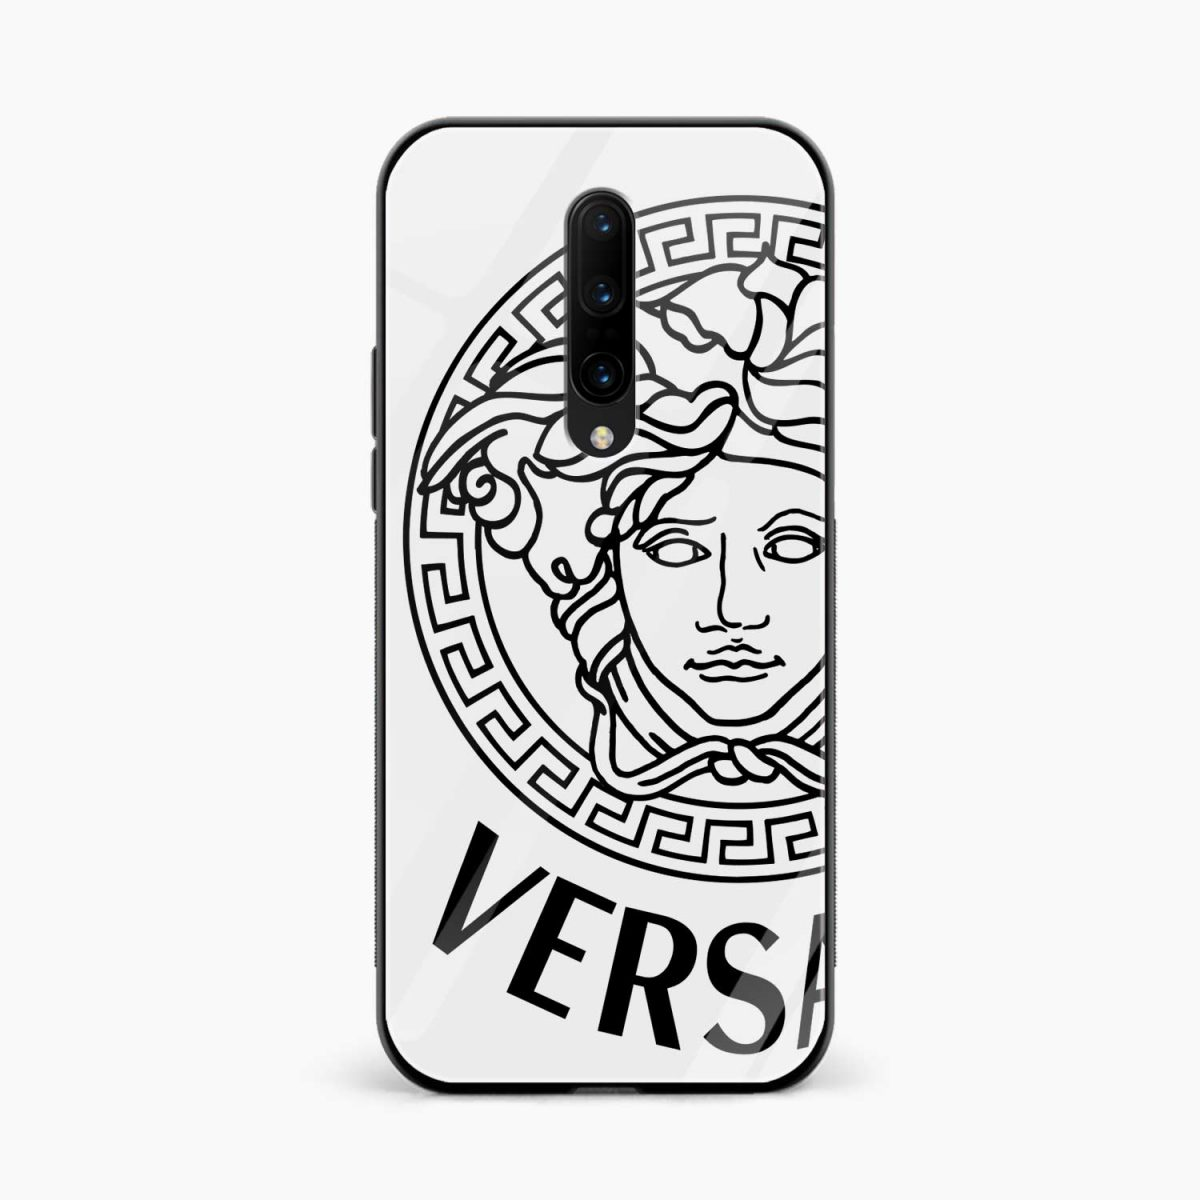 versace black white front view oneplus 7 pro back cover